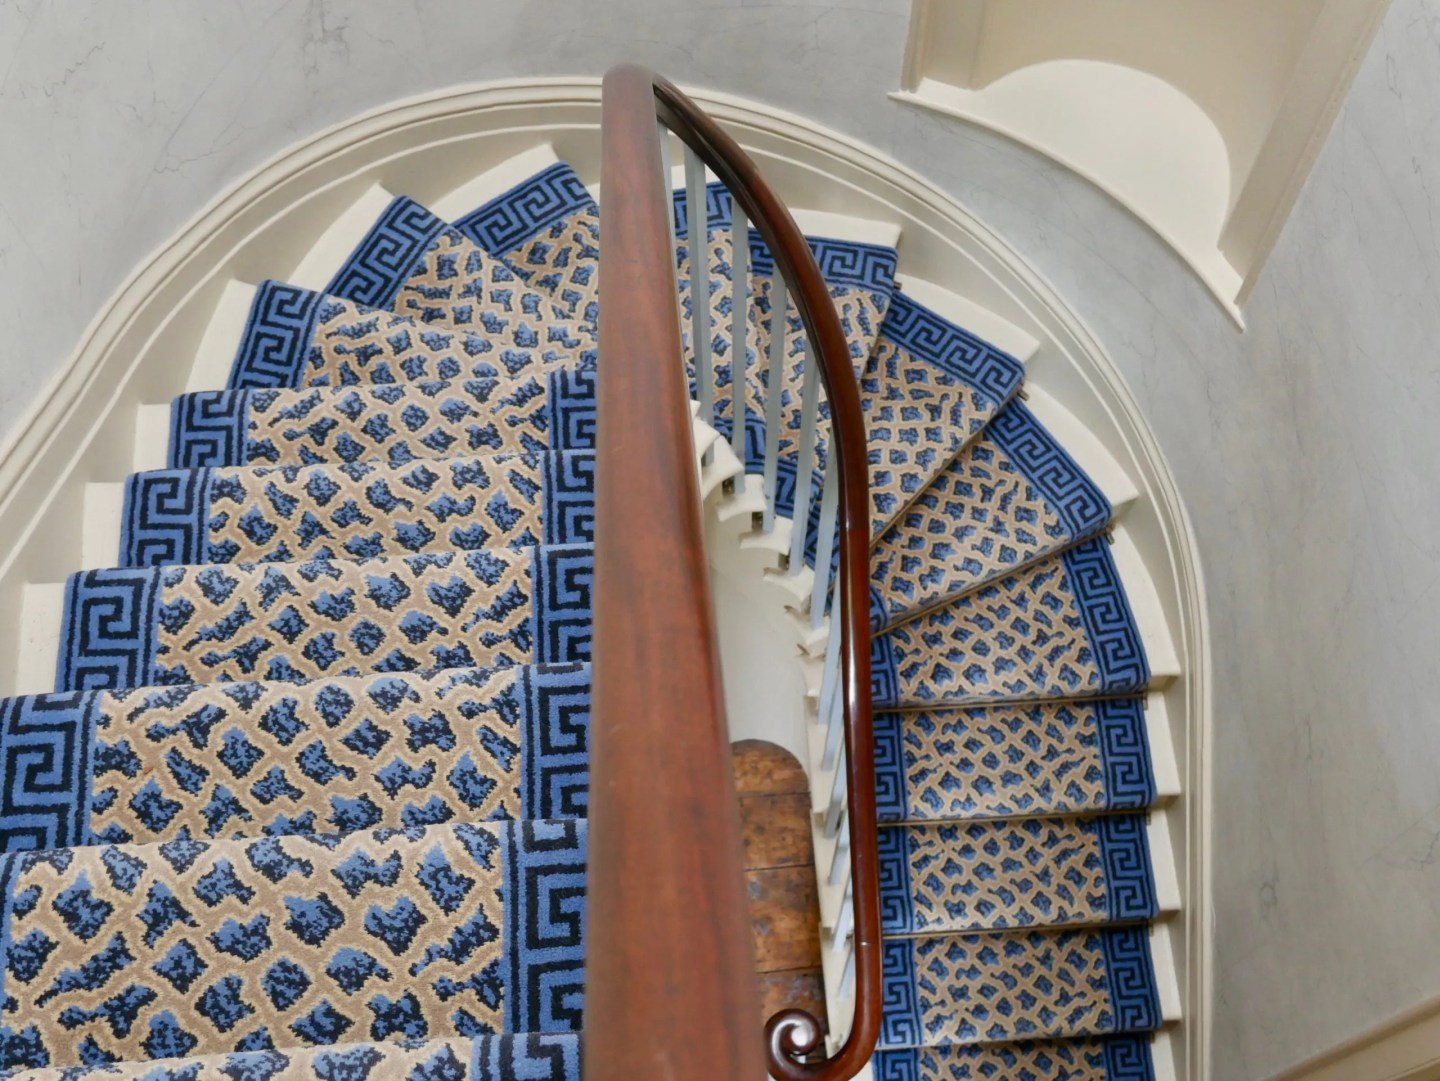 Turner's House stair